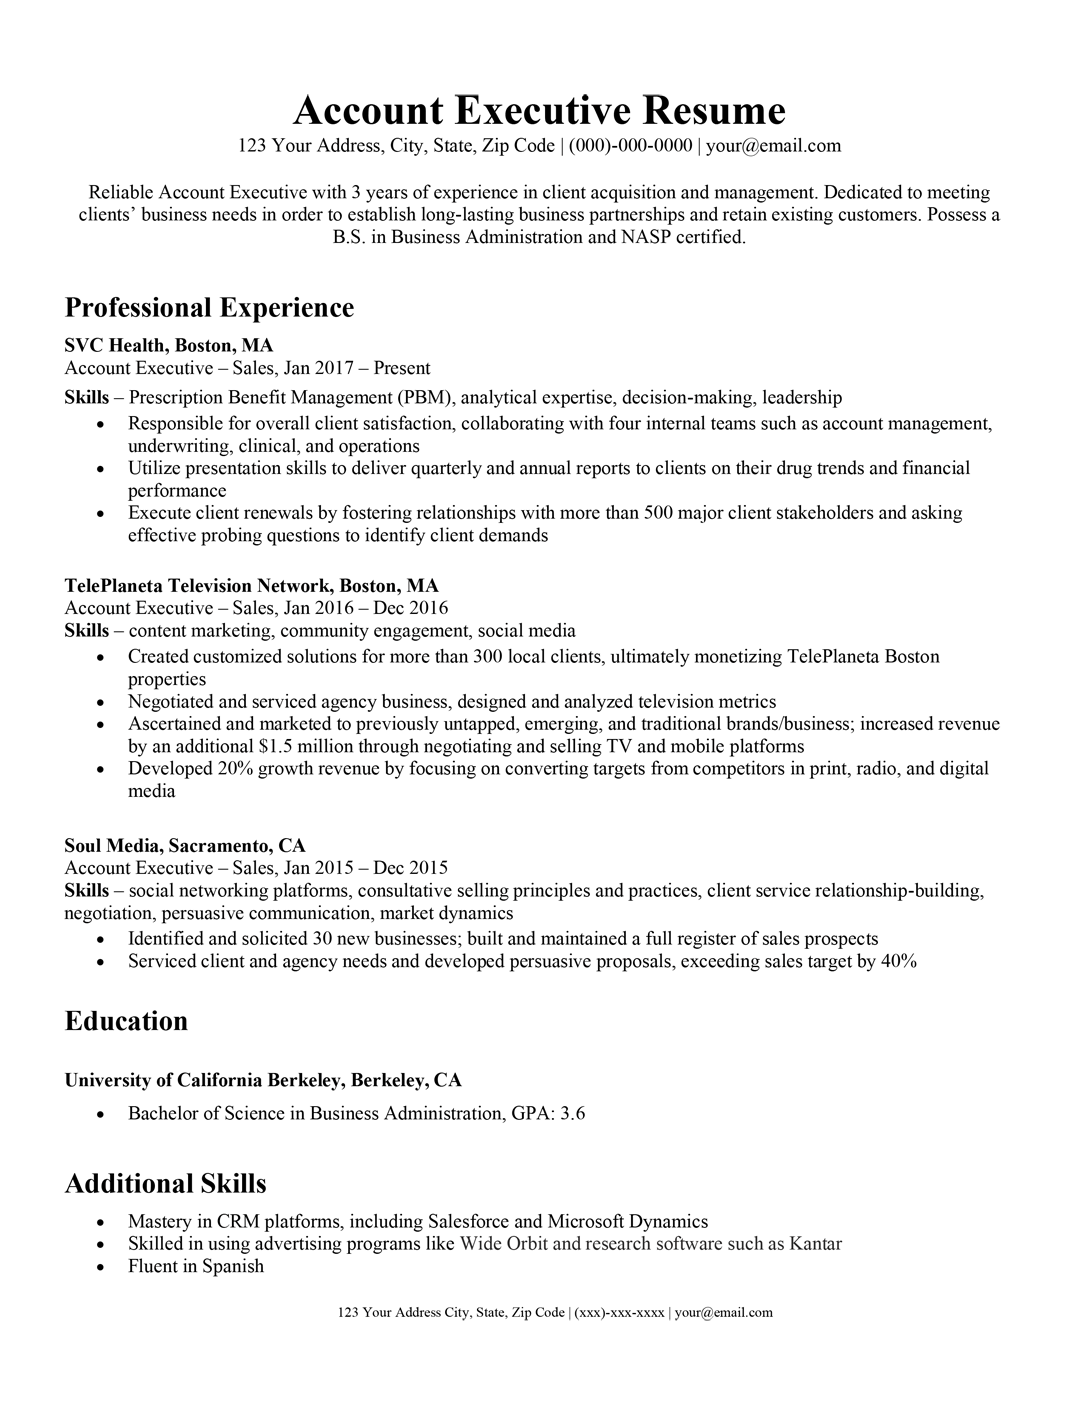 Account Executive Resume Writing Tips Resume Companion